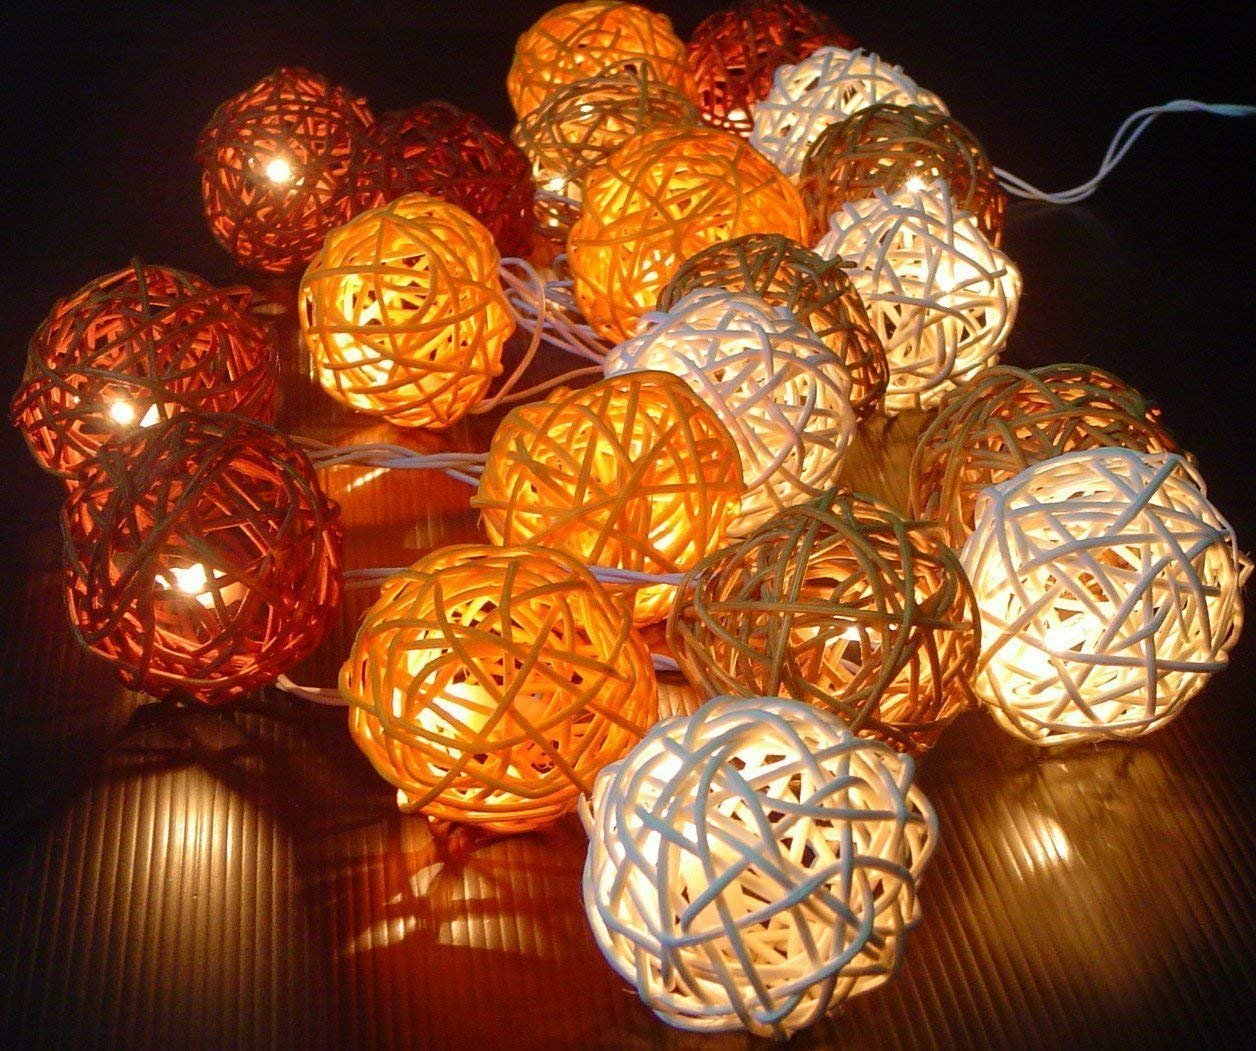 Thai Decorated Storm Autumn Browns Rattan Cane Battery Powered Led Wooden Ball Fairy Light String 3m (9.9 Feet) Long By shop by Thai Decorated